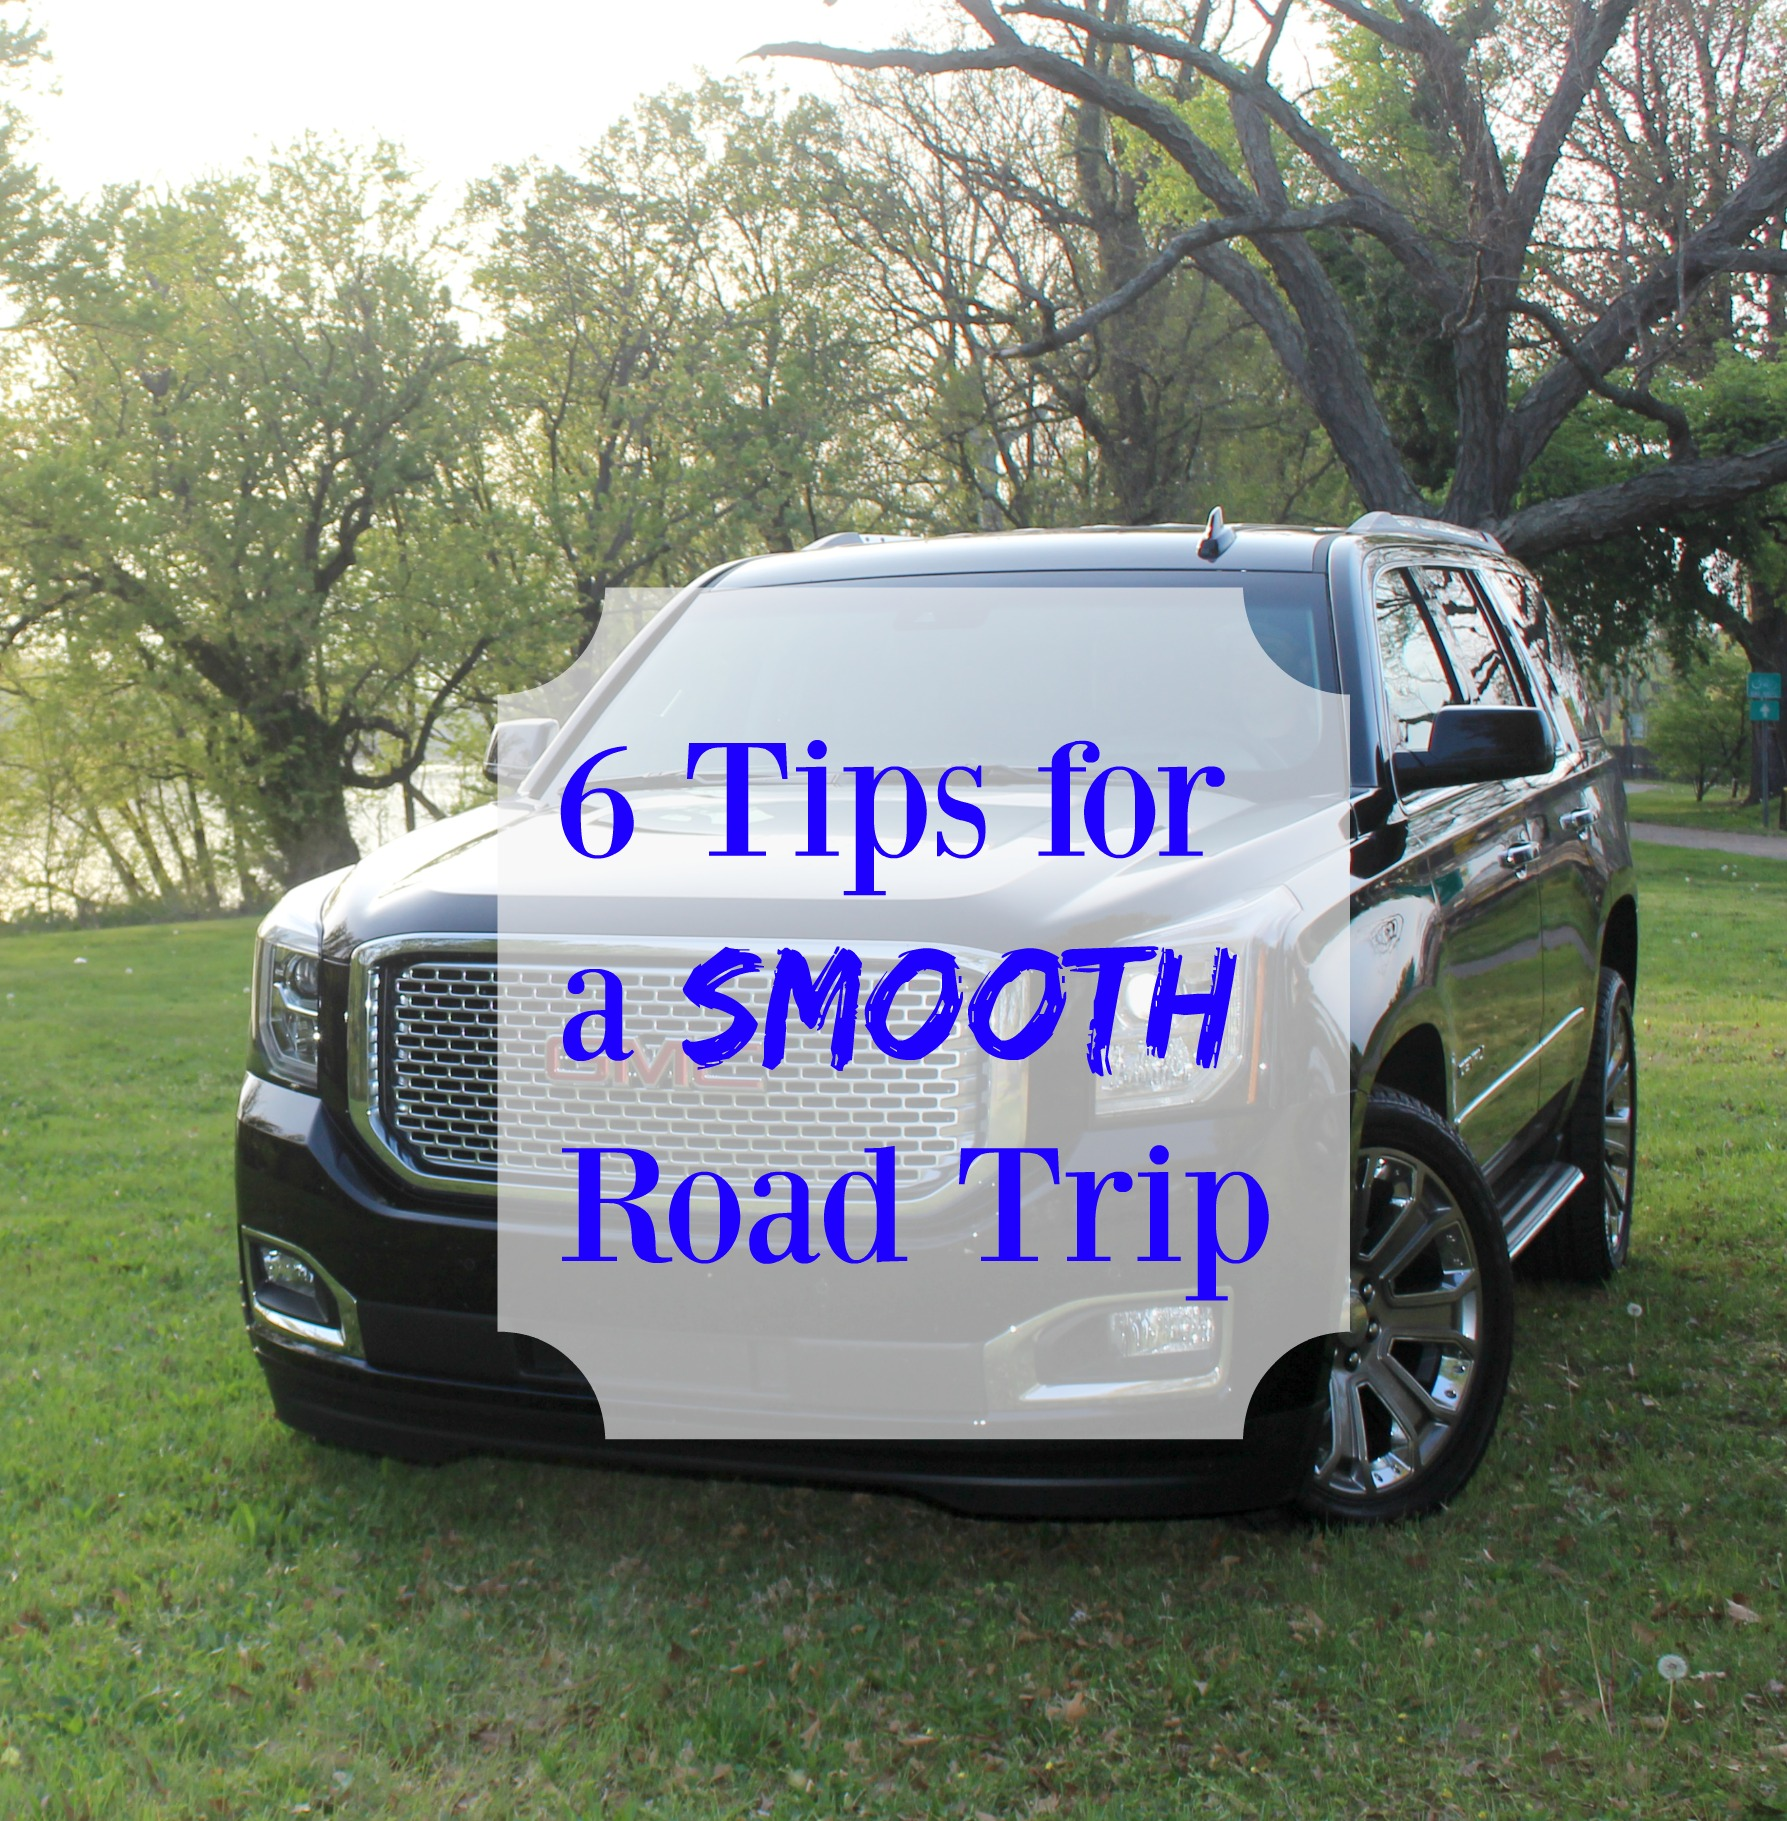 6-tips-for-a-smooth-road-trip